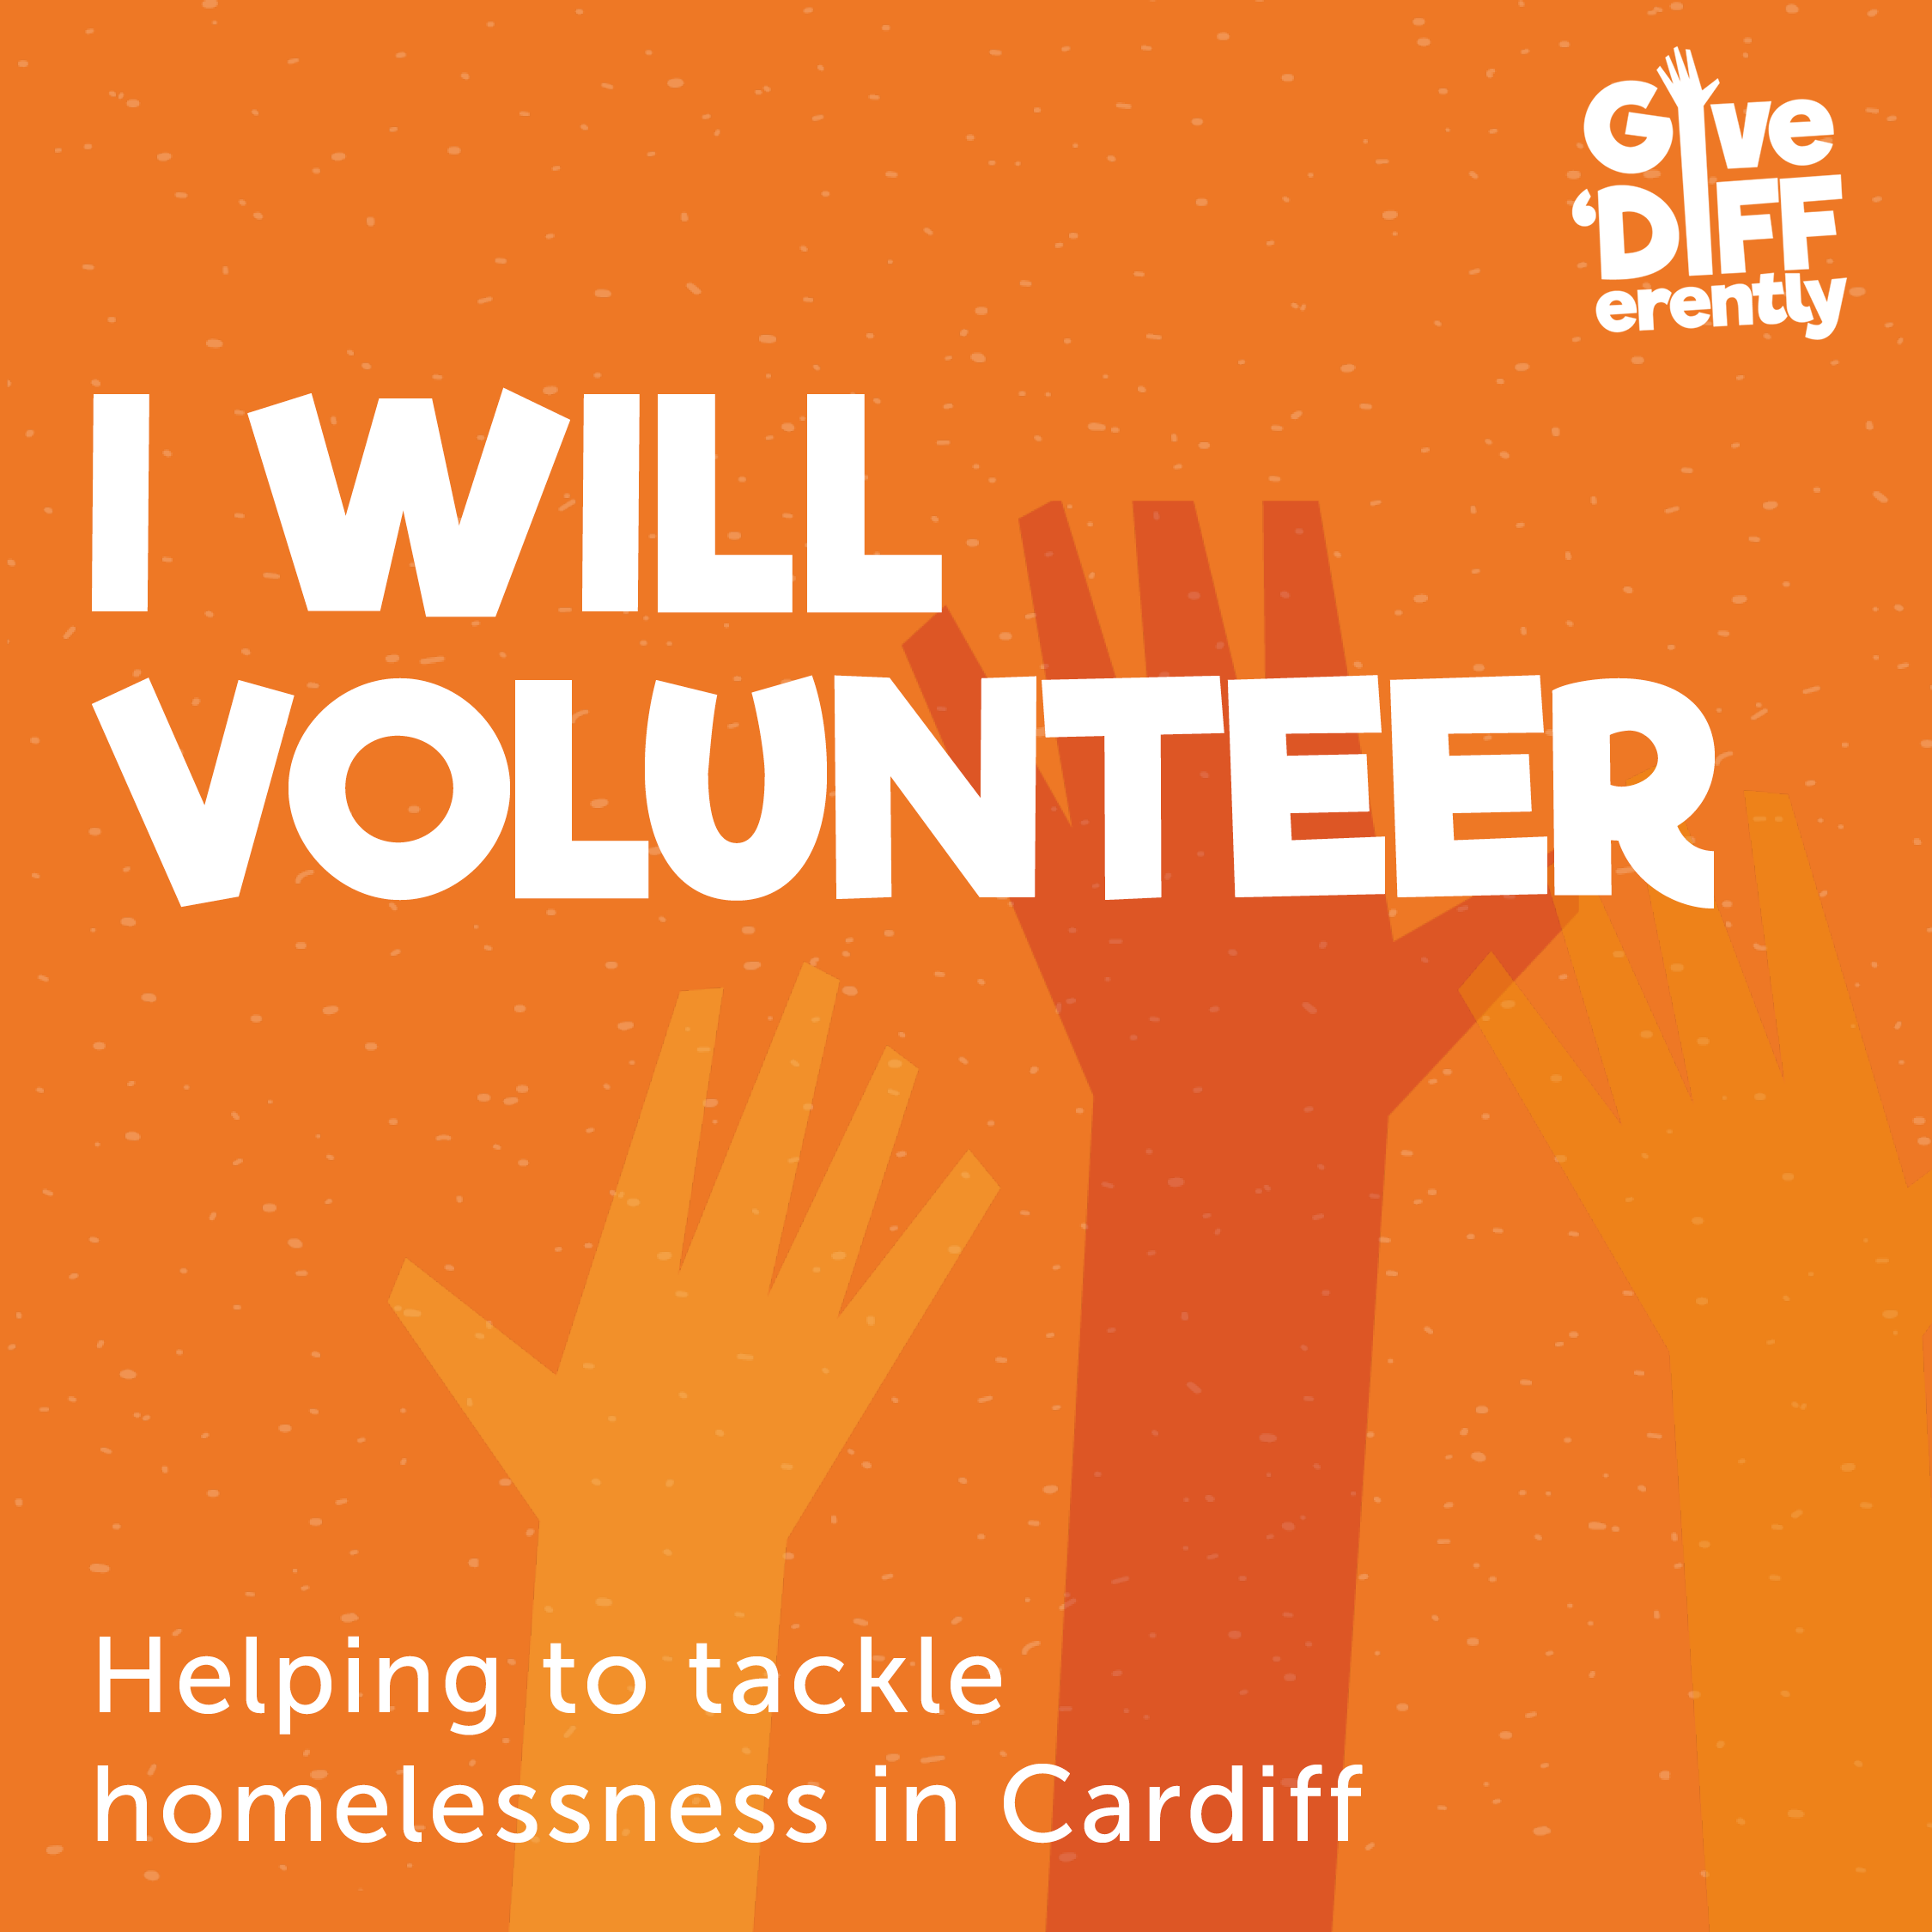 https://www.forcardiff.com/givedifferently/wp-content/uploads/2019/02/PLEDGES5.png